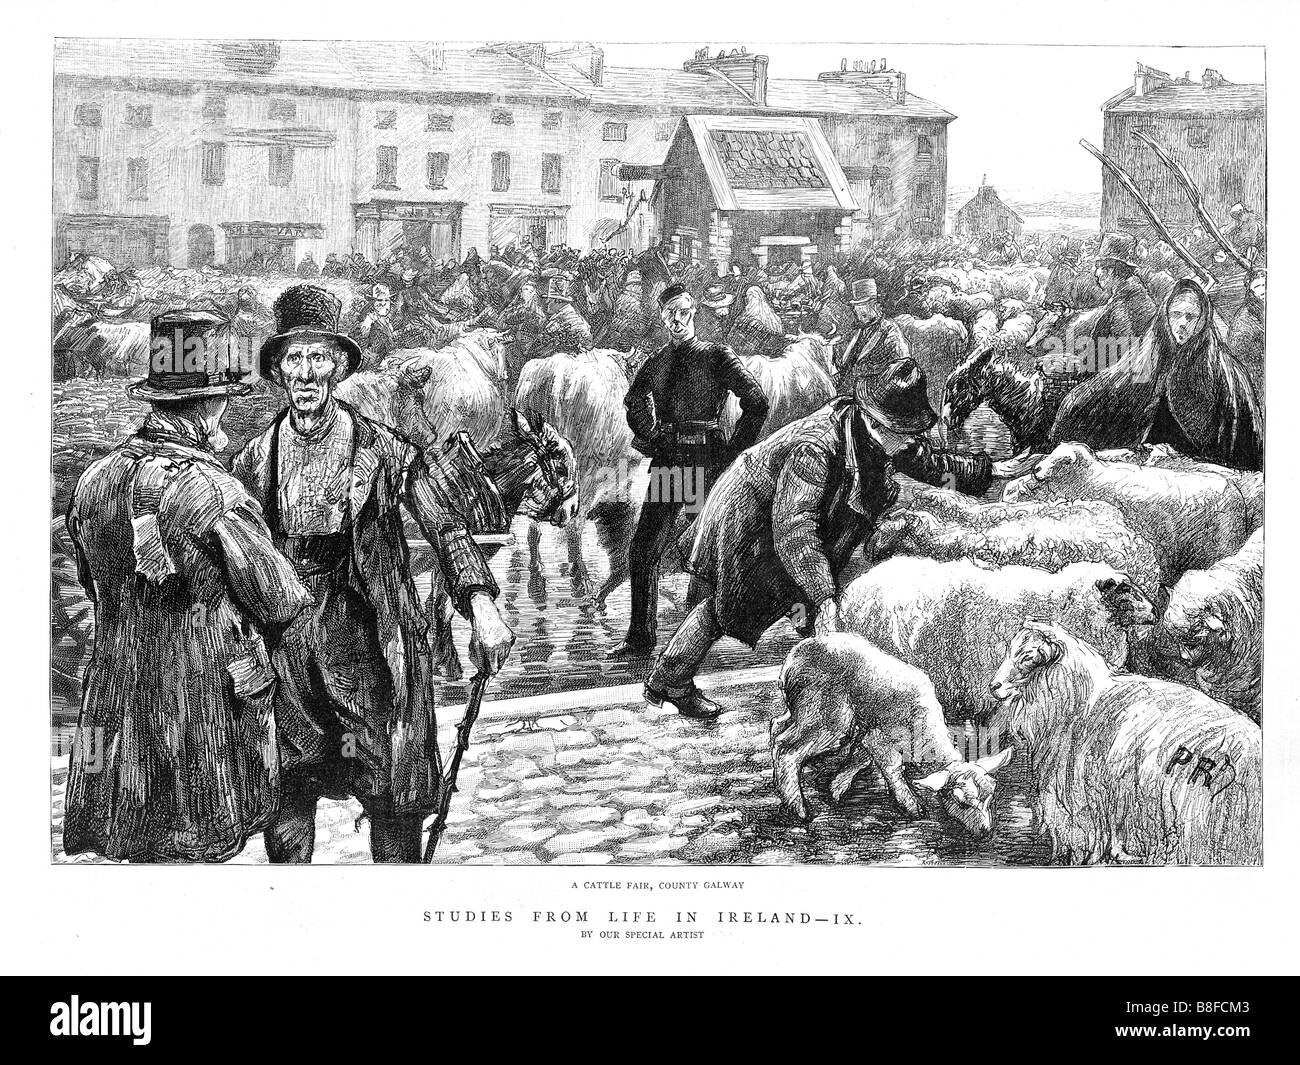 Galway Cattle Fair 1888 engraving of life in Ireland with a country livestock market Stock Photo